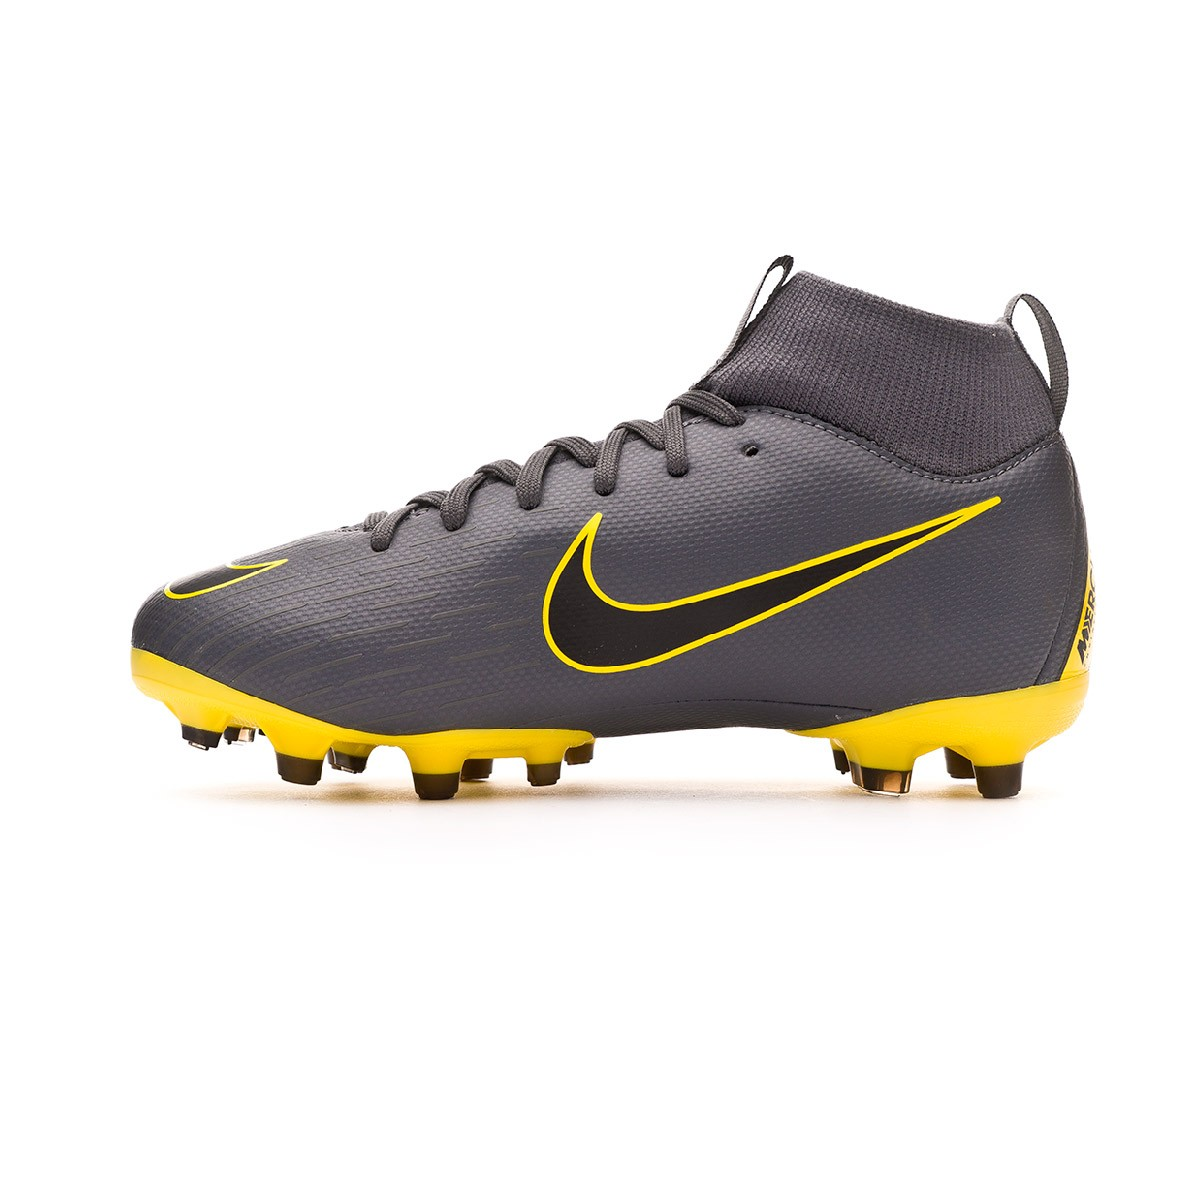 100% authentic fd833 7db79 Bota Mercurial Superfly VI Academy MG Niño Dark grey-Black